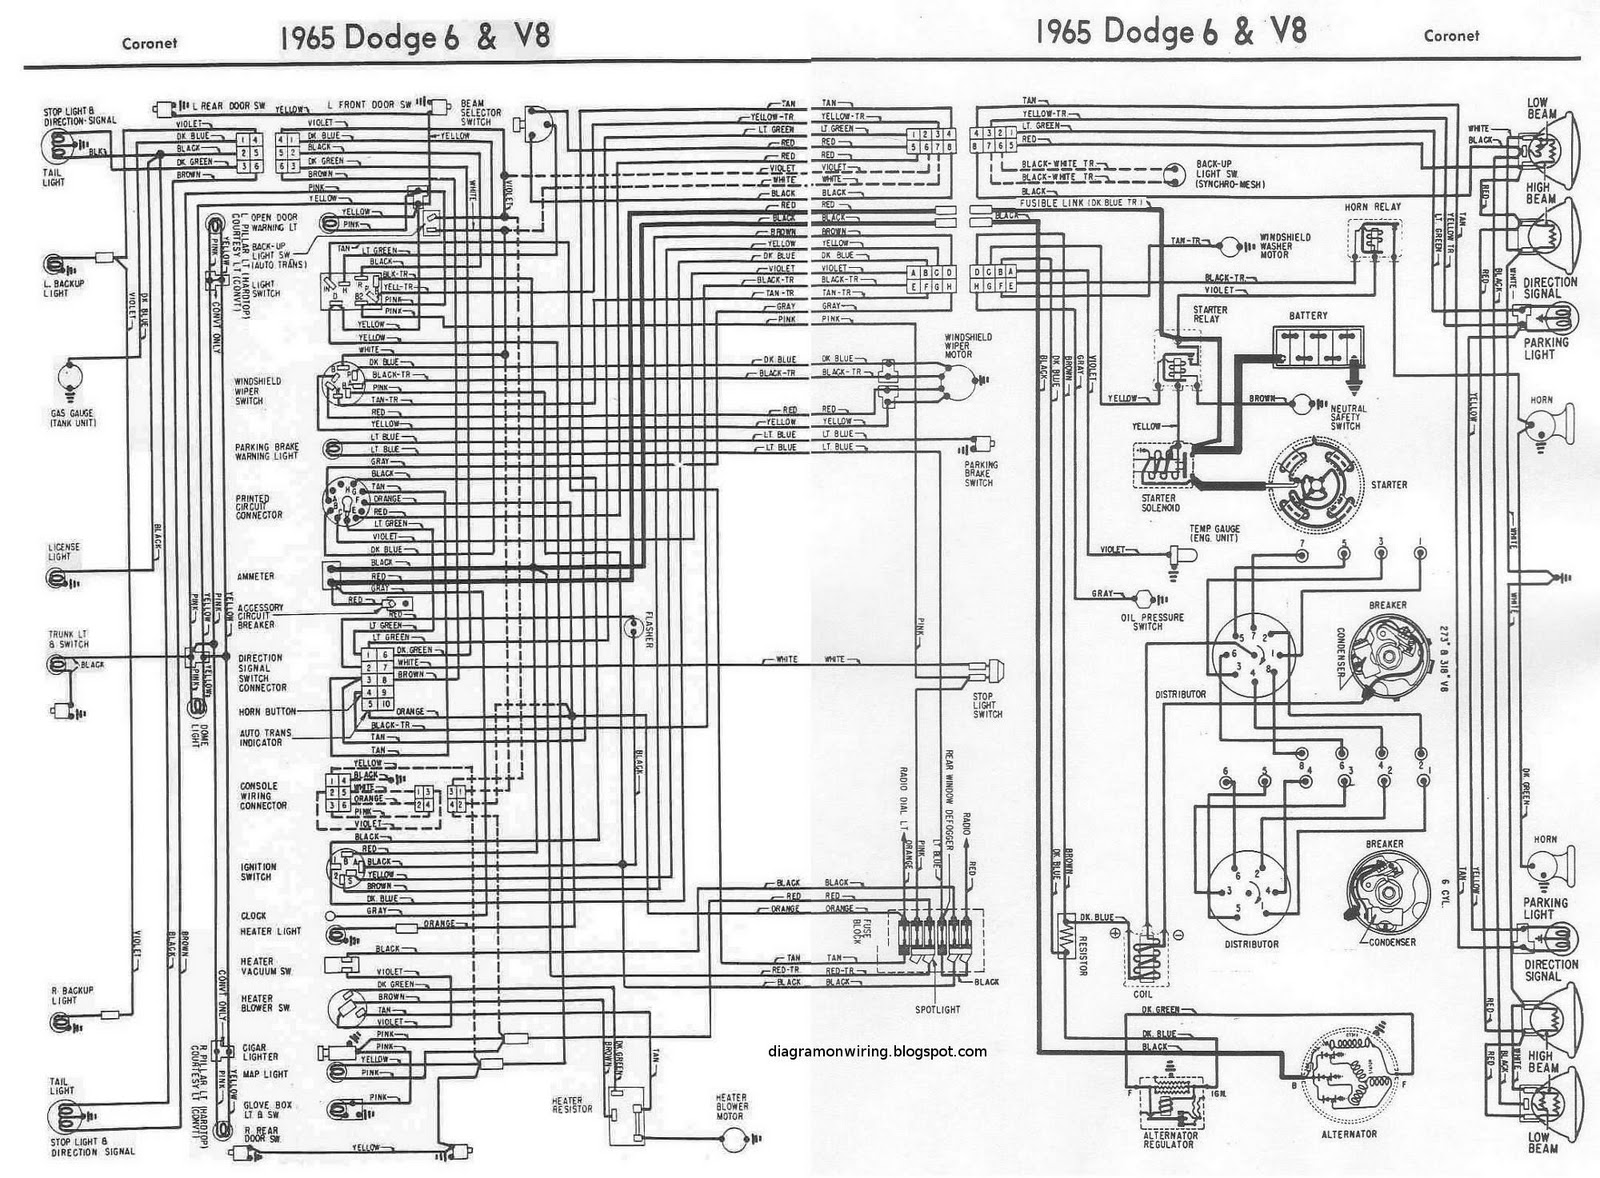 1968 Coronet Engine Wiring Diagram